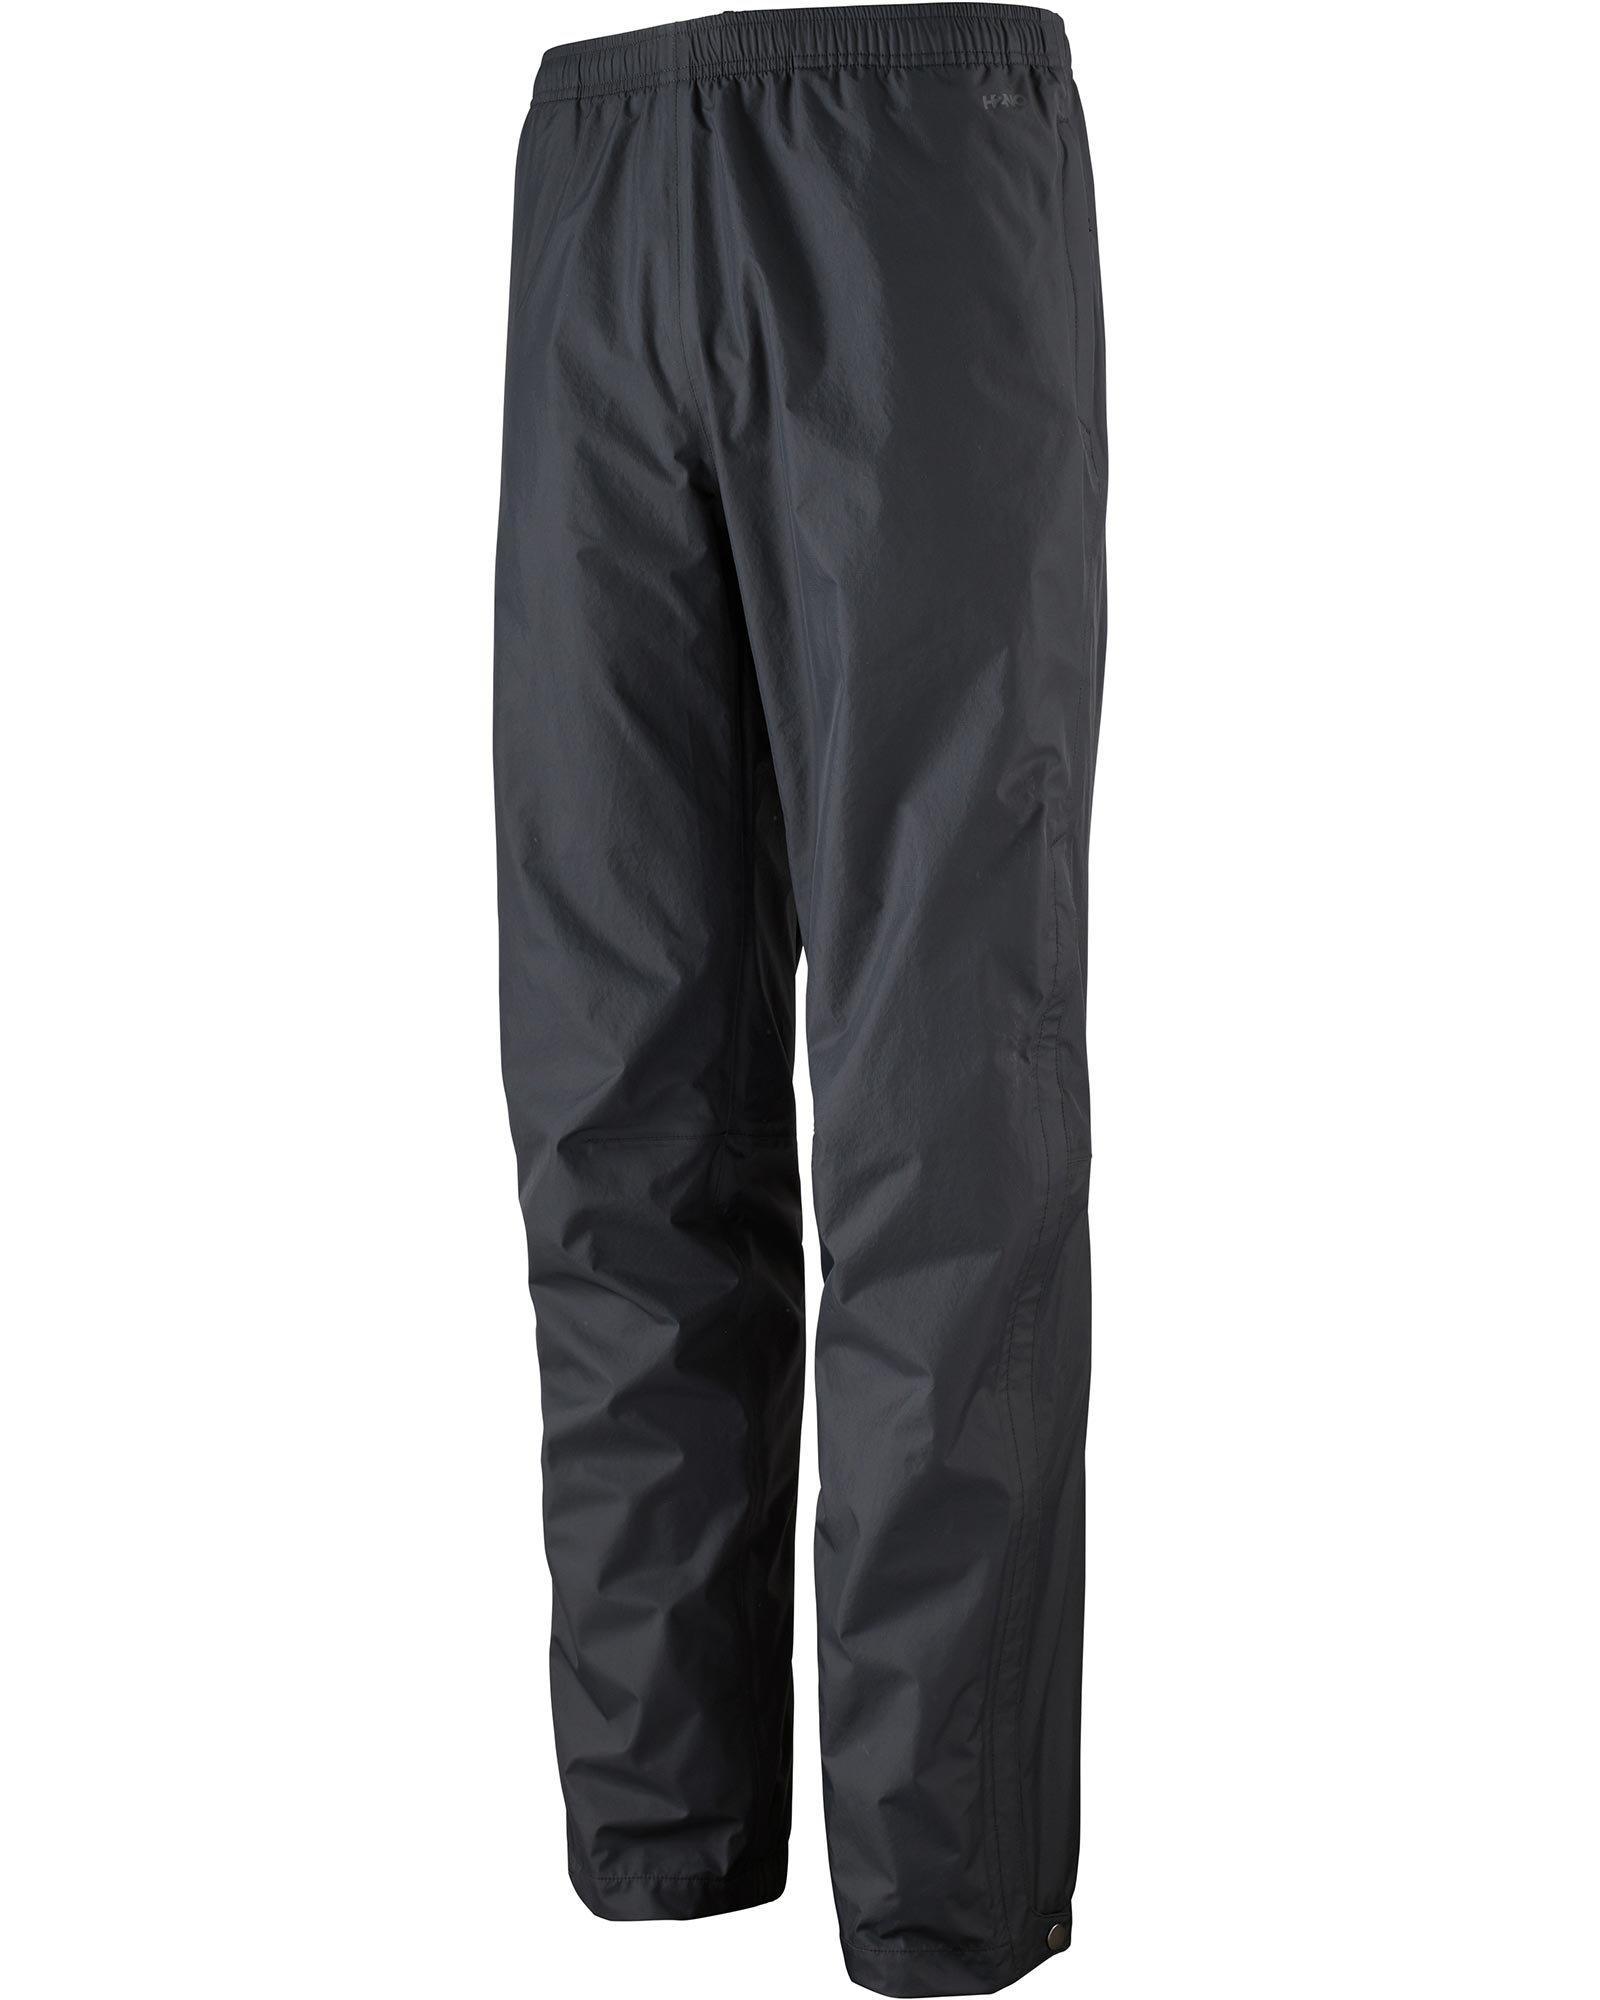 Patagonia Women's Torrentshell 3L Pants 0